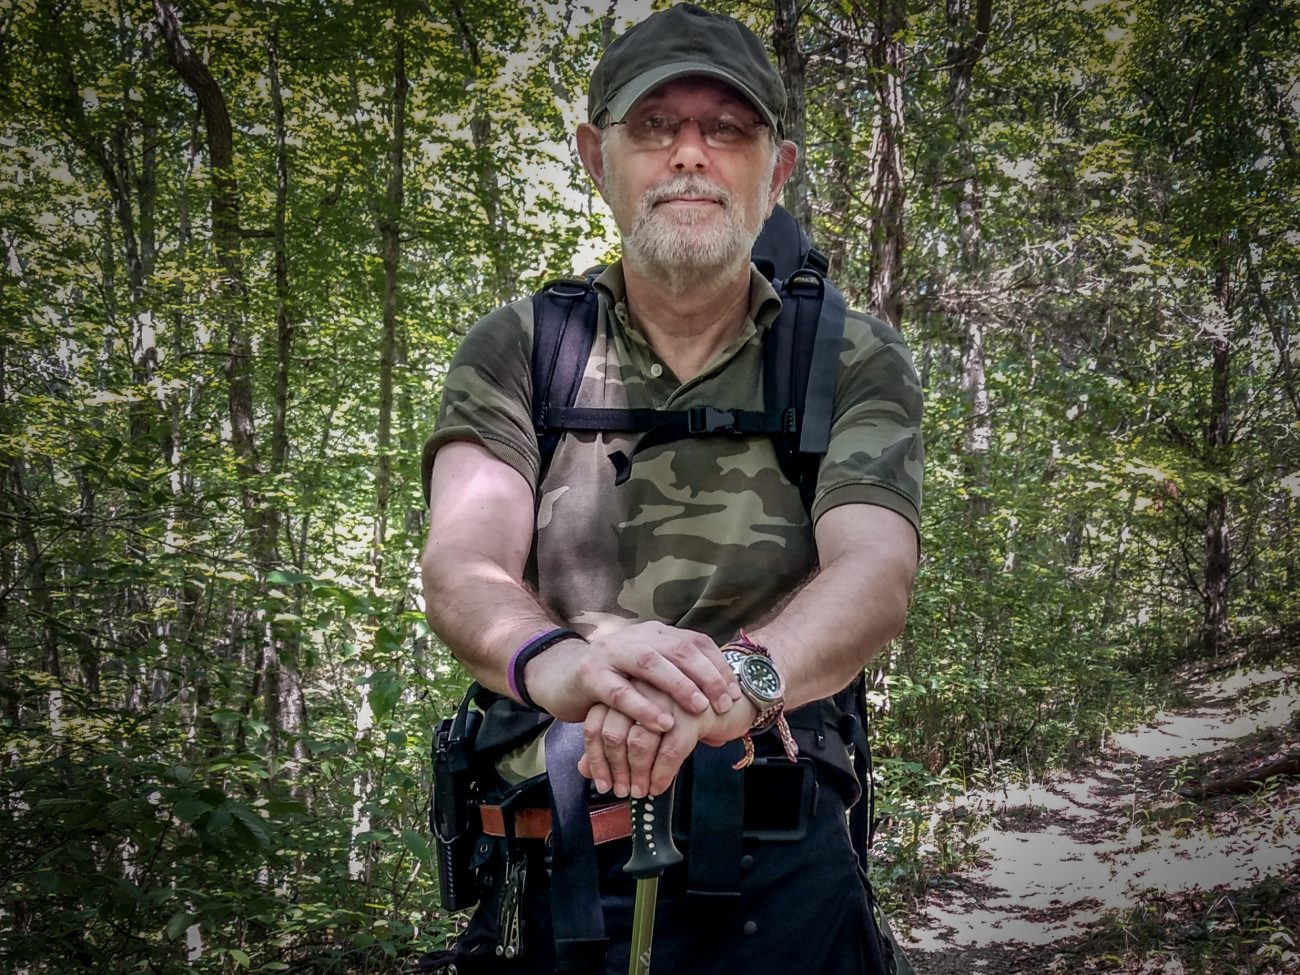 Color photograph of Gary Allman backpacking on the Ozark / Berryman Trail.